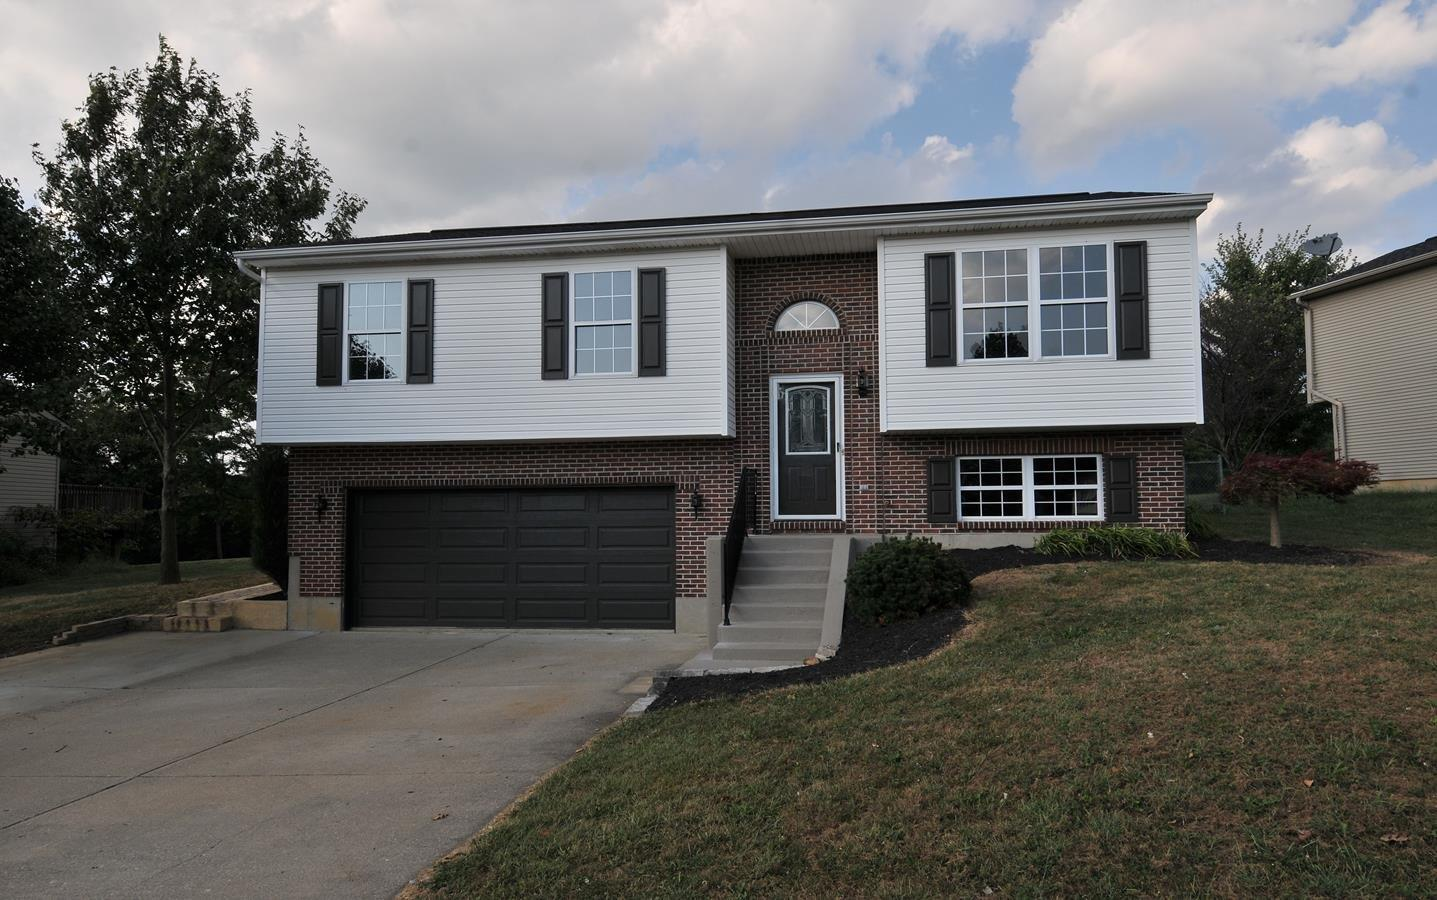 Photo 1 for 203 Brentwood Dr Dry Ridge, KY 41035